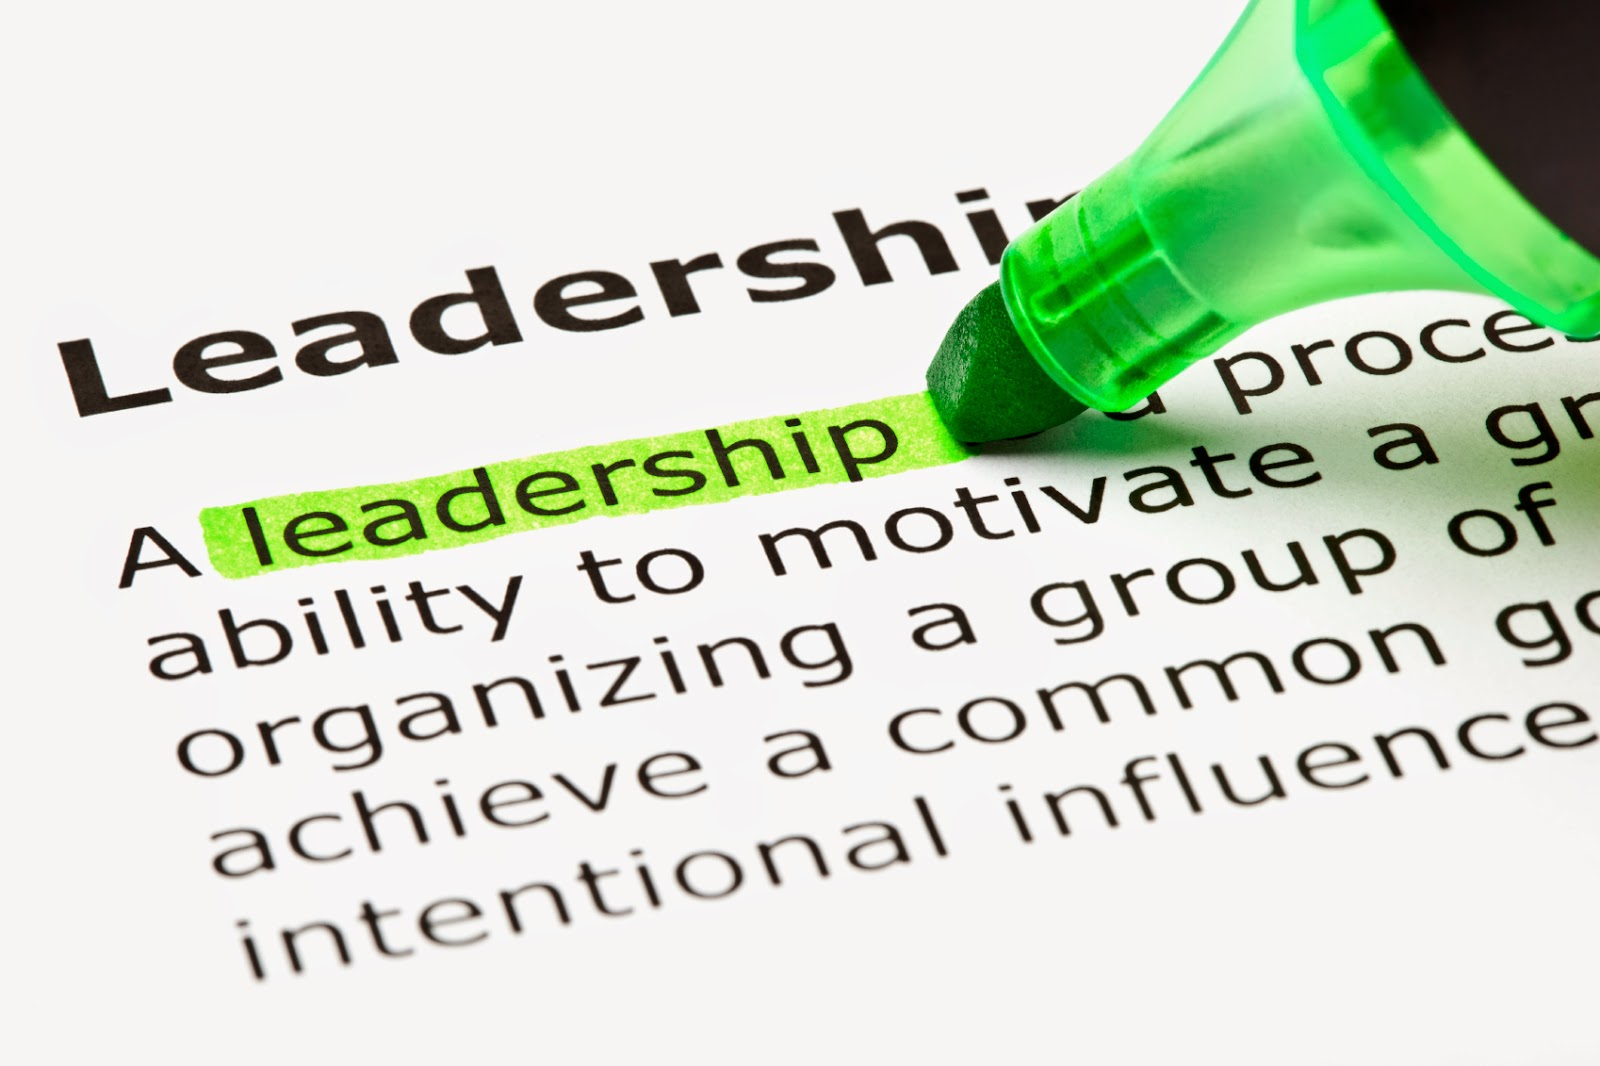 Leadership Promises - Making the Most of the Gift